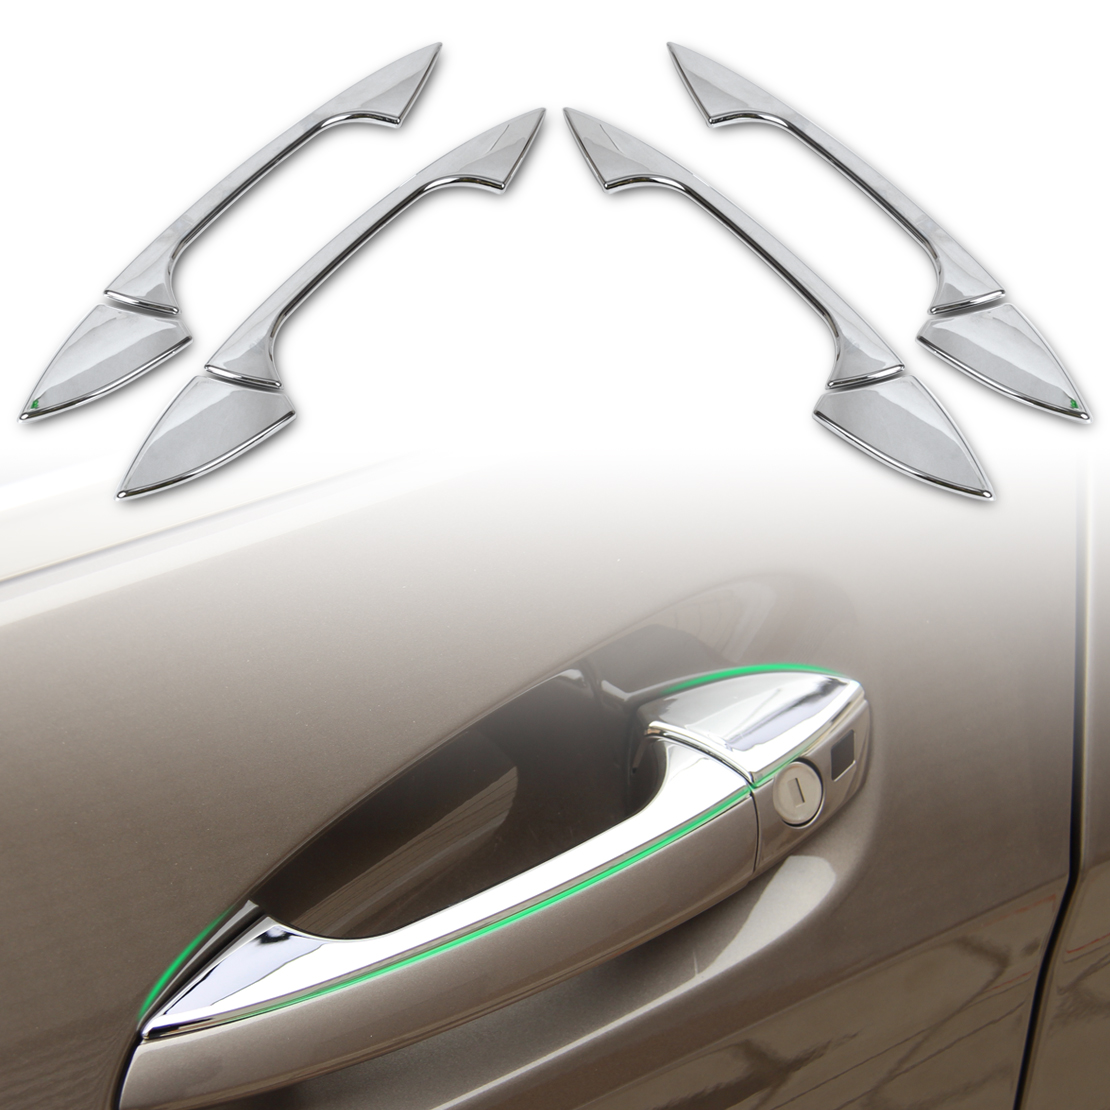 DWCX Chrome <font><b>Door</b></font> <font><b>Handle</b></font> Cover Trim for <font><b>Mercedes</b></font> Benz B C E GLK ML CLA Class W246 W166 W117 W204 W212 X204 image